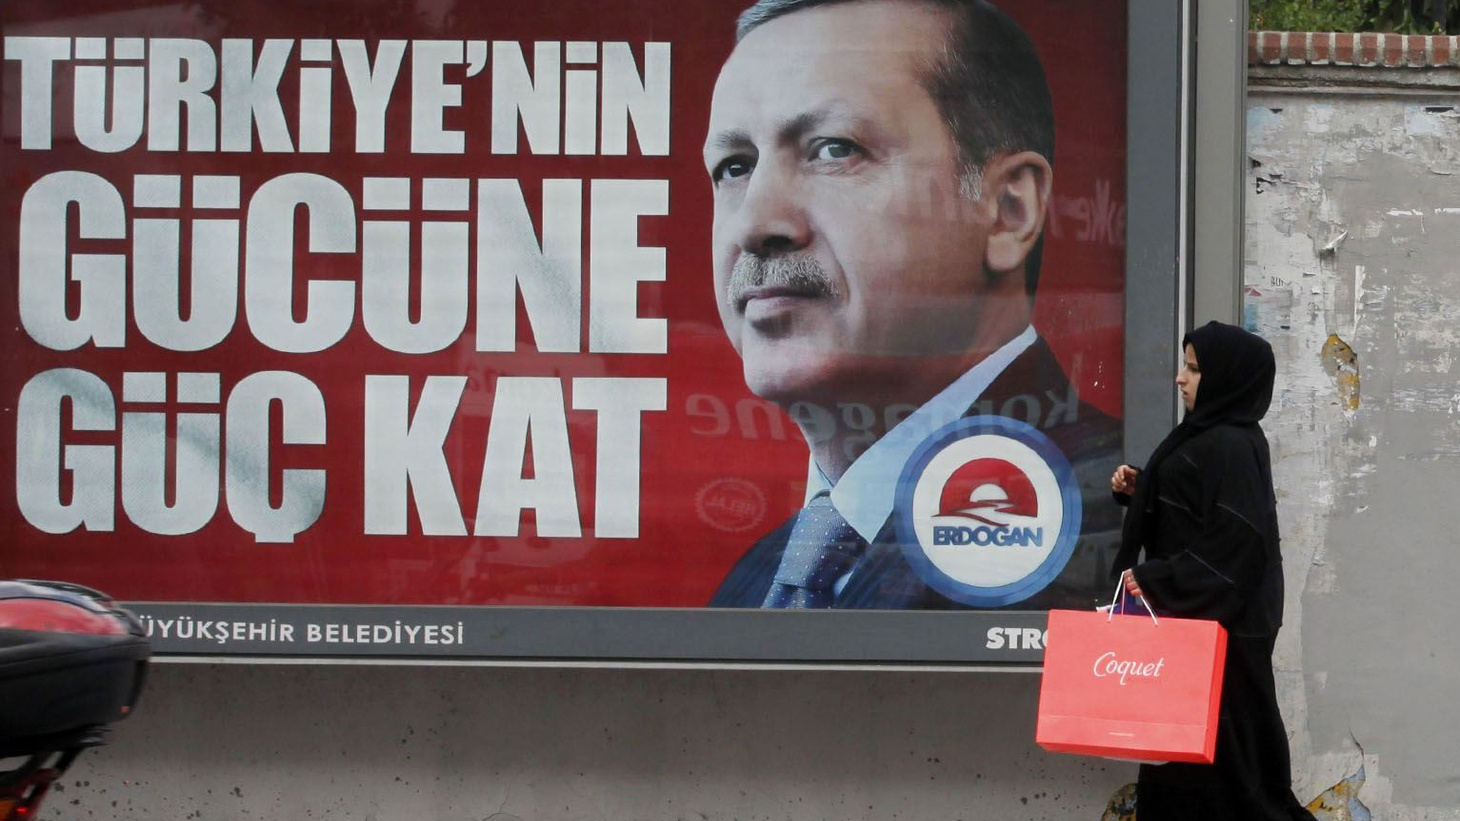 Sunday's parliamentary elections mean big change in Turkey — good news for Kurds, secularists and other minorities; bad news for President Erdoğan, his drive for personal power and his Islamist political party. It also means new instability in a region awash in deadly violence.